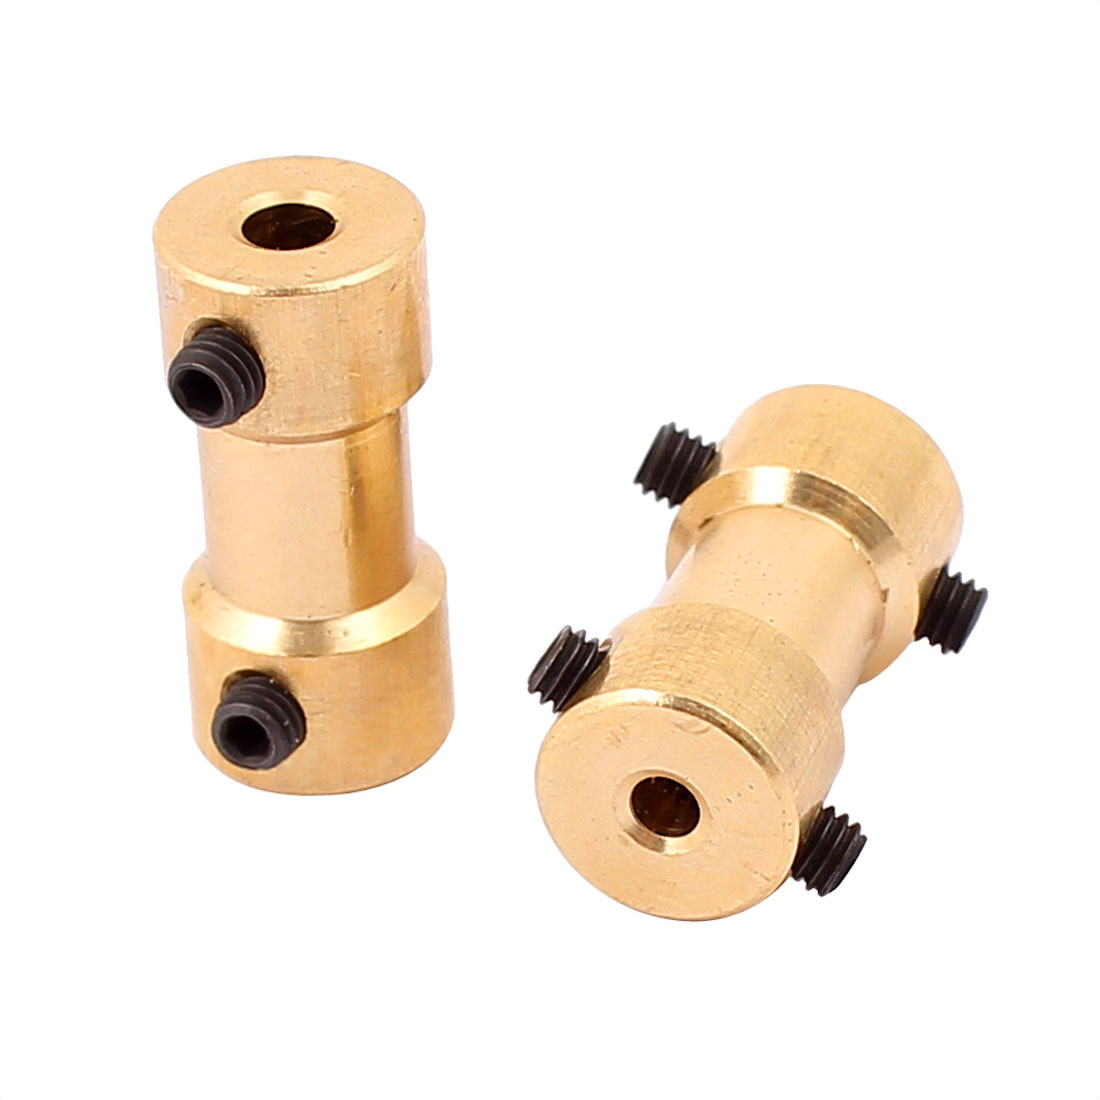 2Pcs 3mm to 2.3mm Copper DIY Motor Shaft Coupling Joint for Electric Car Toy